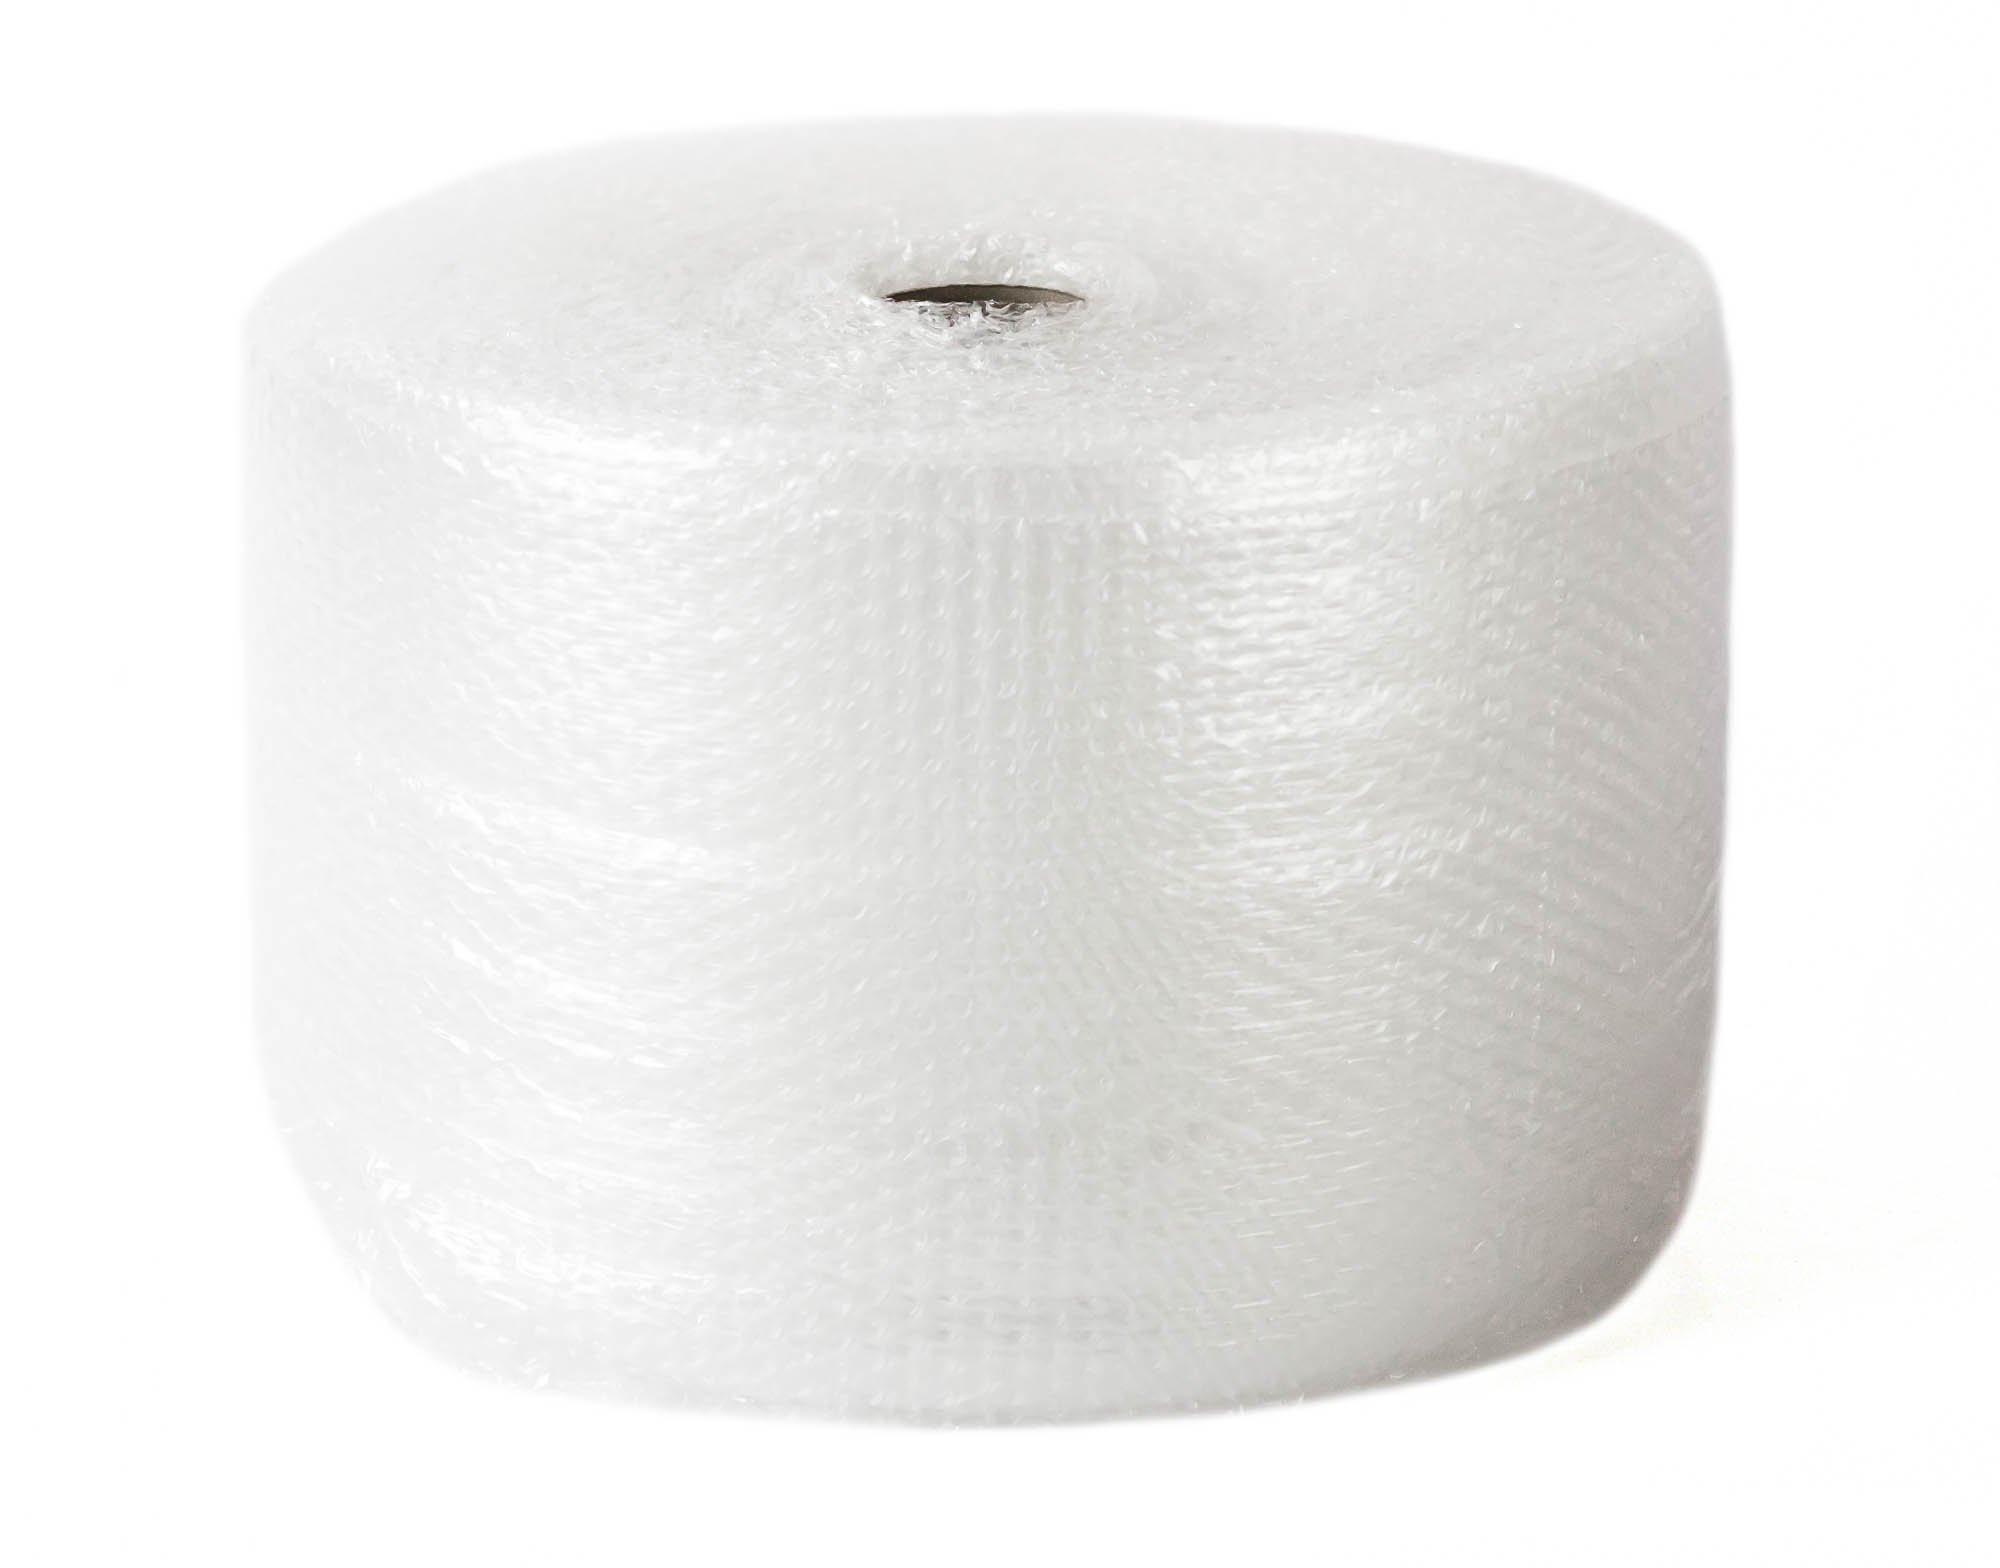 Small 3/16 inch Bubble Cushioning Wrap Slit 12 by 12 Perf 525 Foot Roll Lightweight Protective Packaging Material in Rolls/Perforated Sheets for Moving, Shipping, Padding and Packaging by B2Bboxes (Image #2)